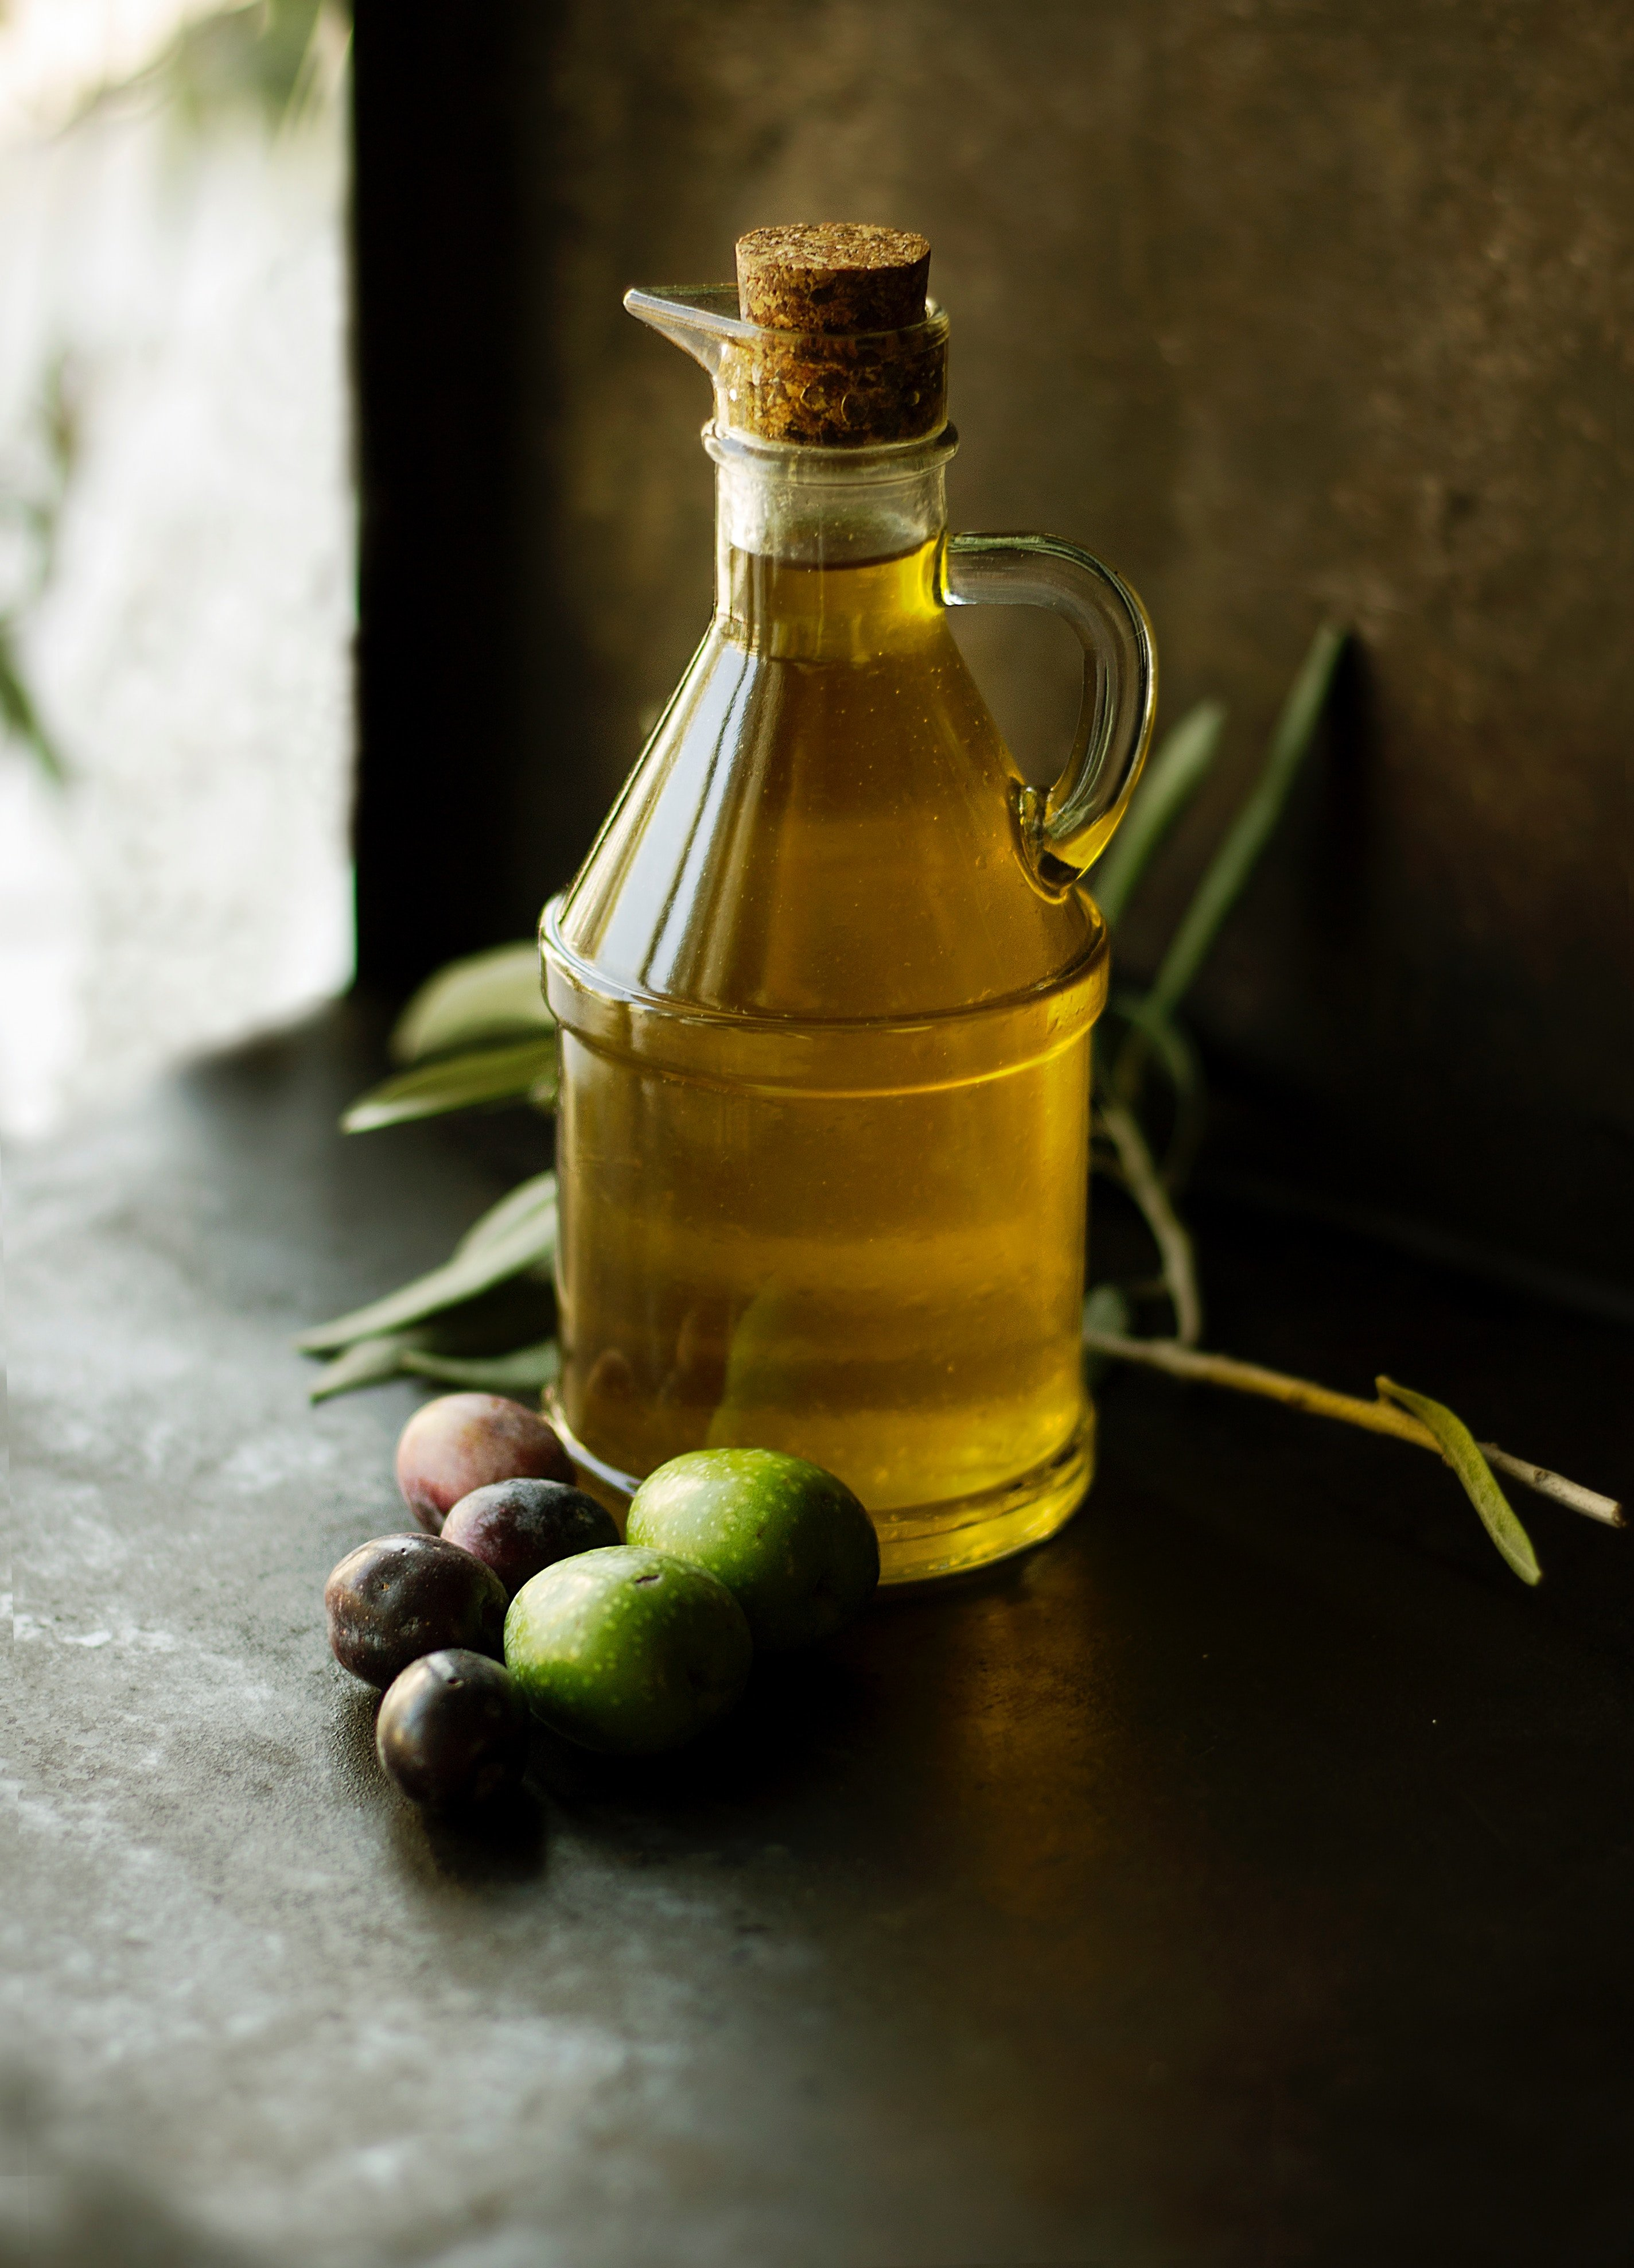 olive oil is the basis for the Sicilian kitchen